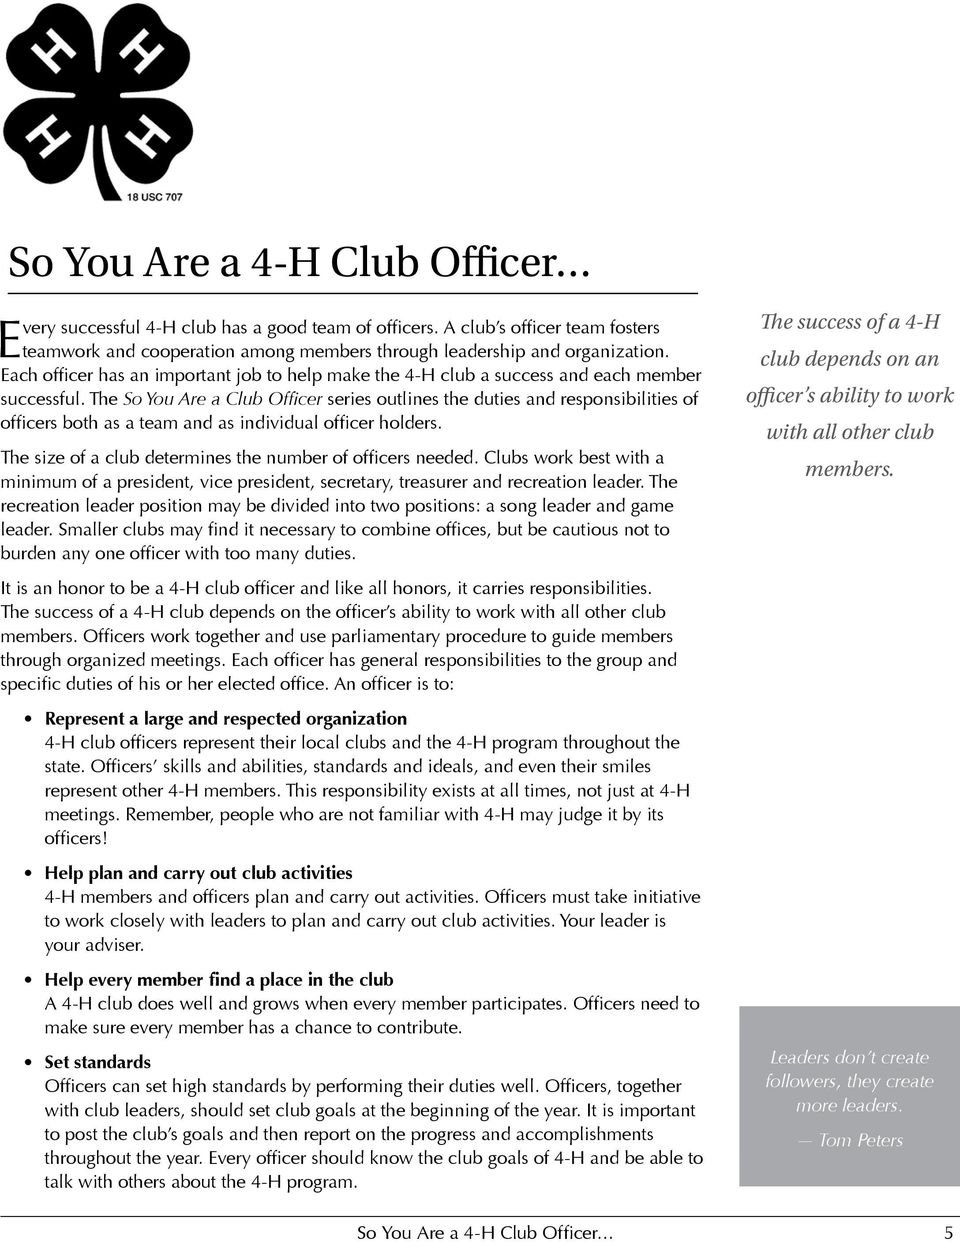 The So You Are a Club Officer series outlines the duties and responsibilities of officers both as a team and as individual officer holders. The size of a club determines the number of officers needed.